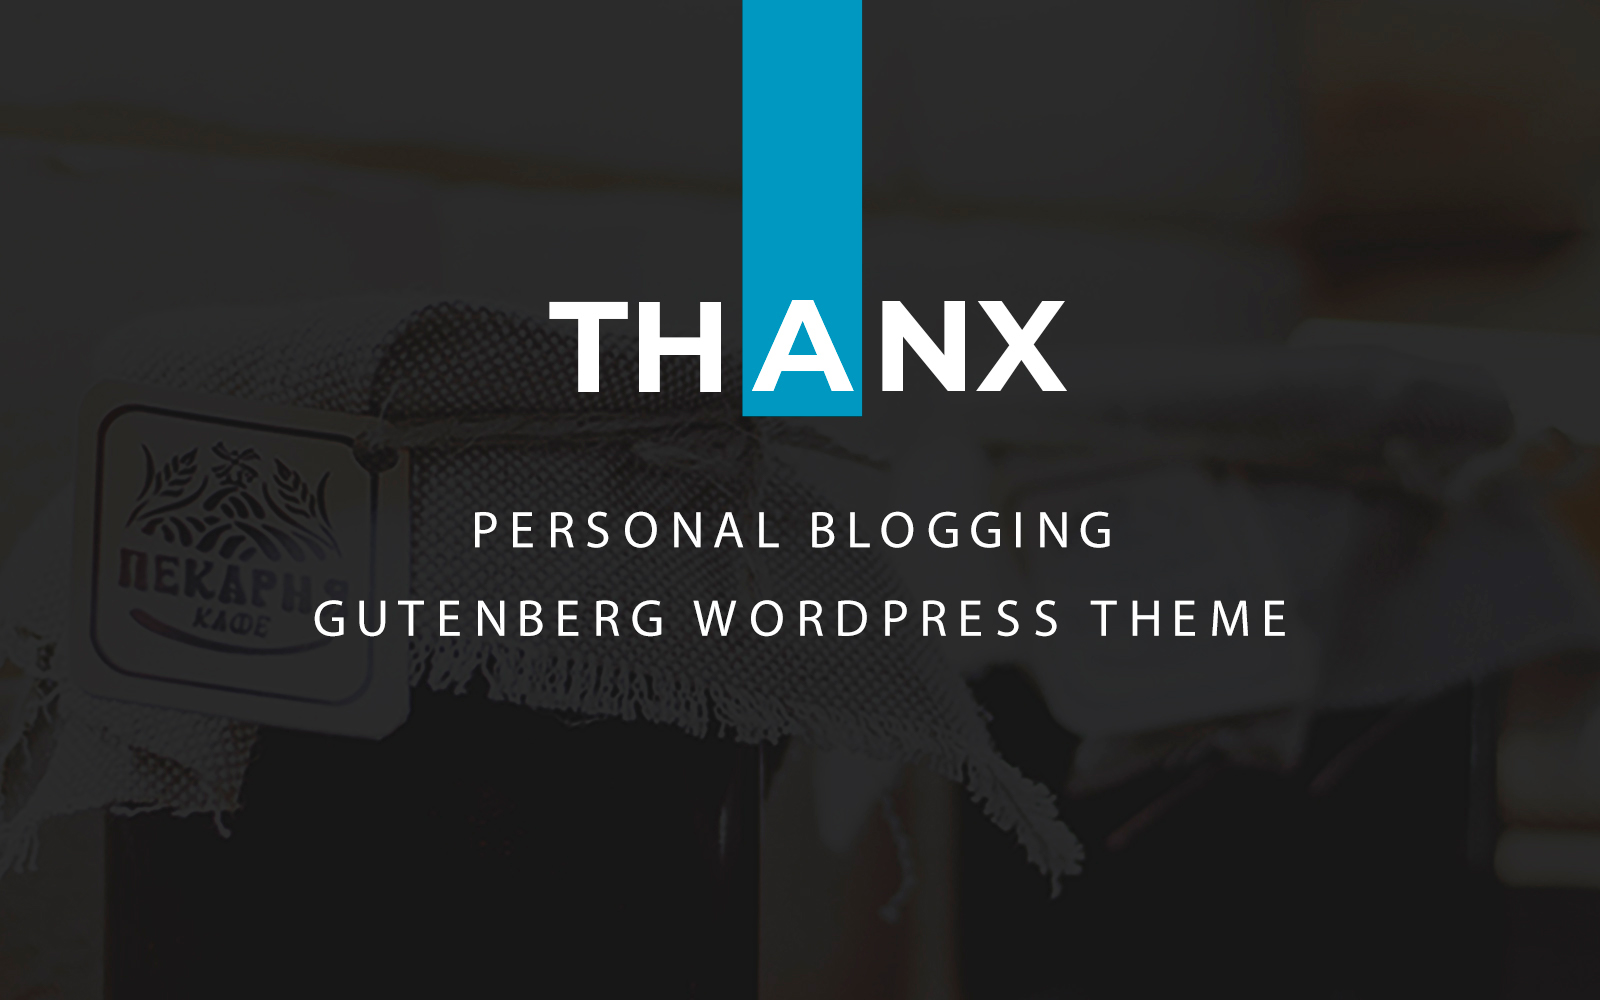 Thanx - Gutenberg WordPress Theme